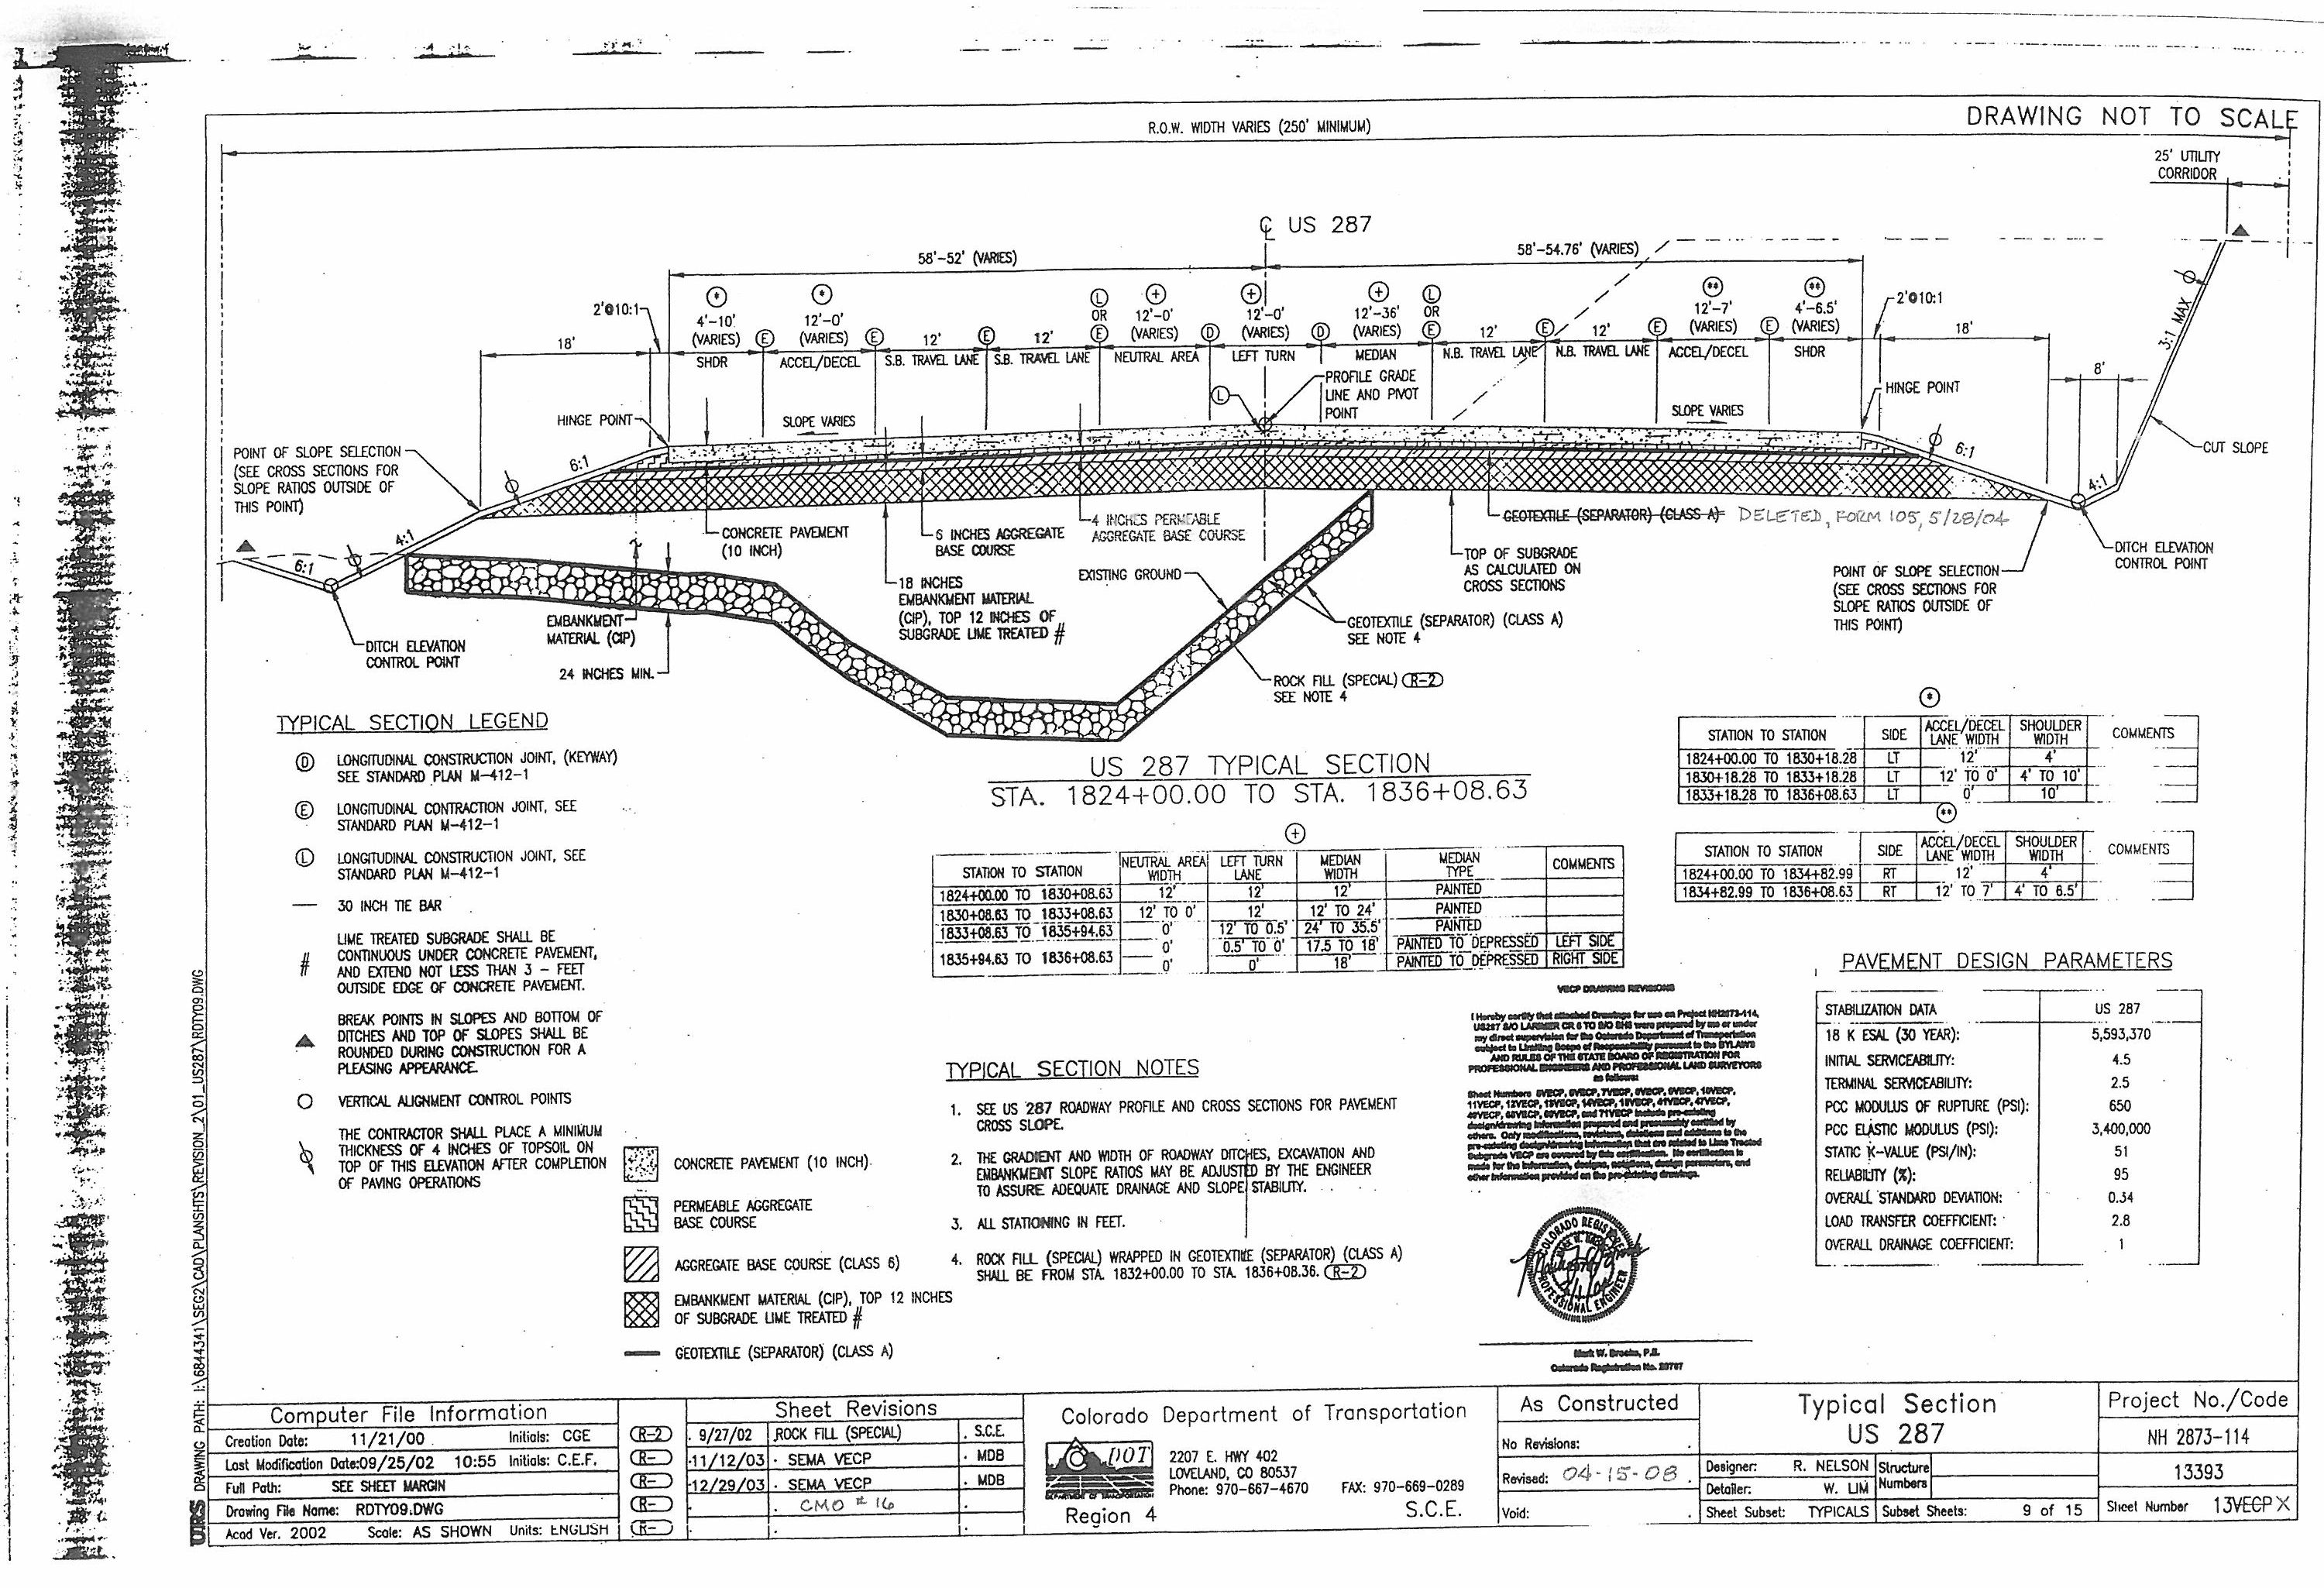 Image of As Constructed Plan